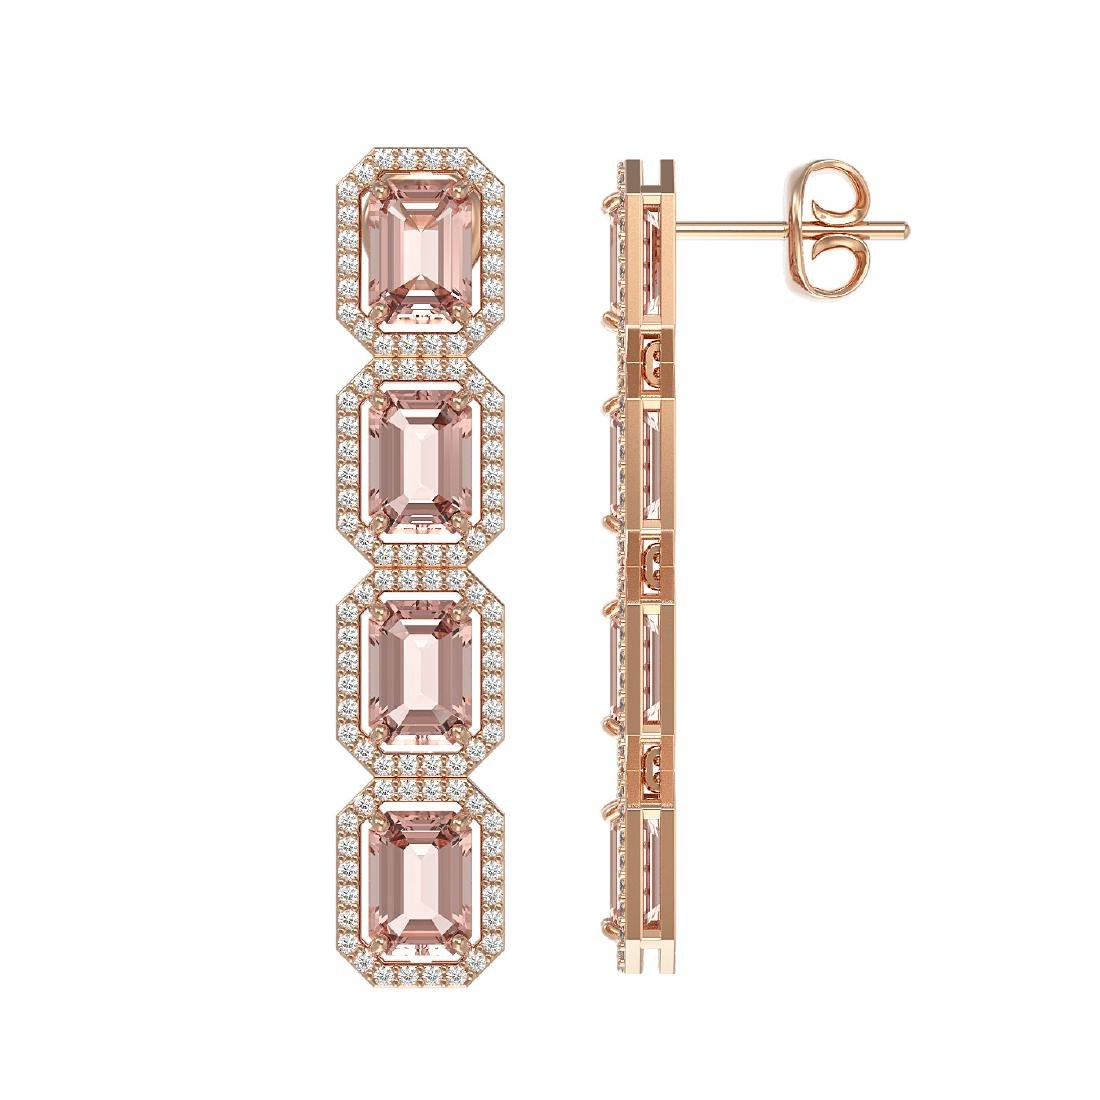 10.73 CTW Morganite & Diamond Halo Earrings 10K Rose - 2